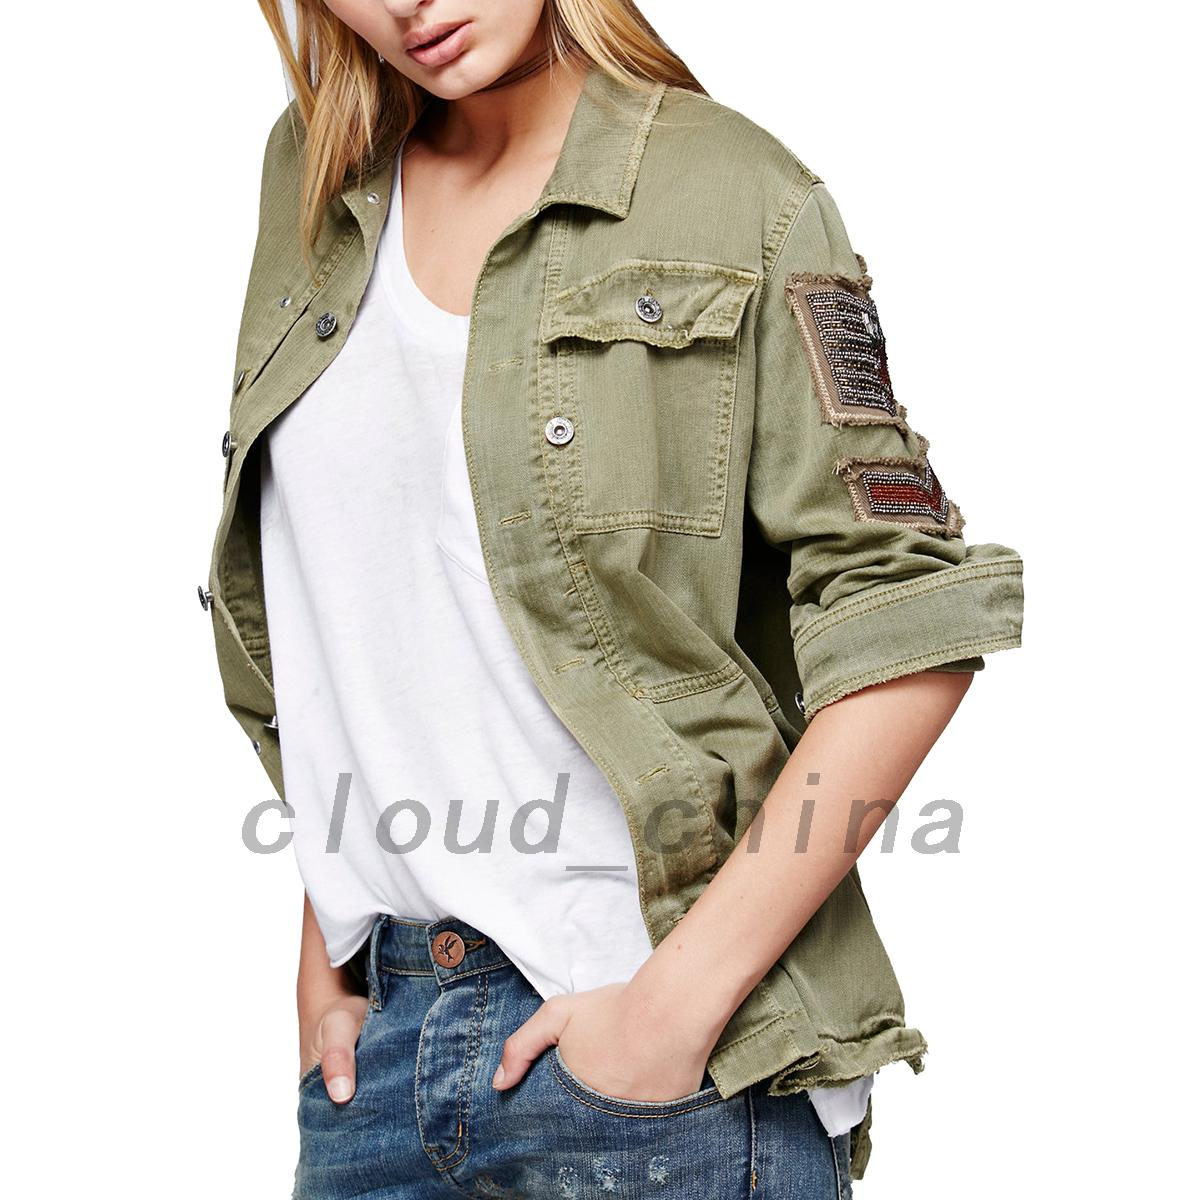 Point-Collar-Denim-Embellished-Military-Shirt-Jacket-Outwear-Coat-Sweats-Jumper